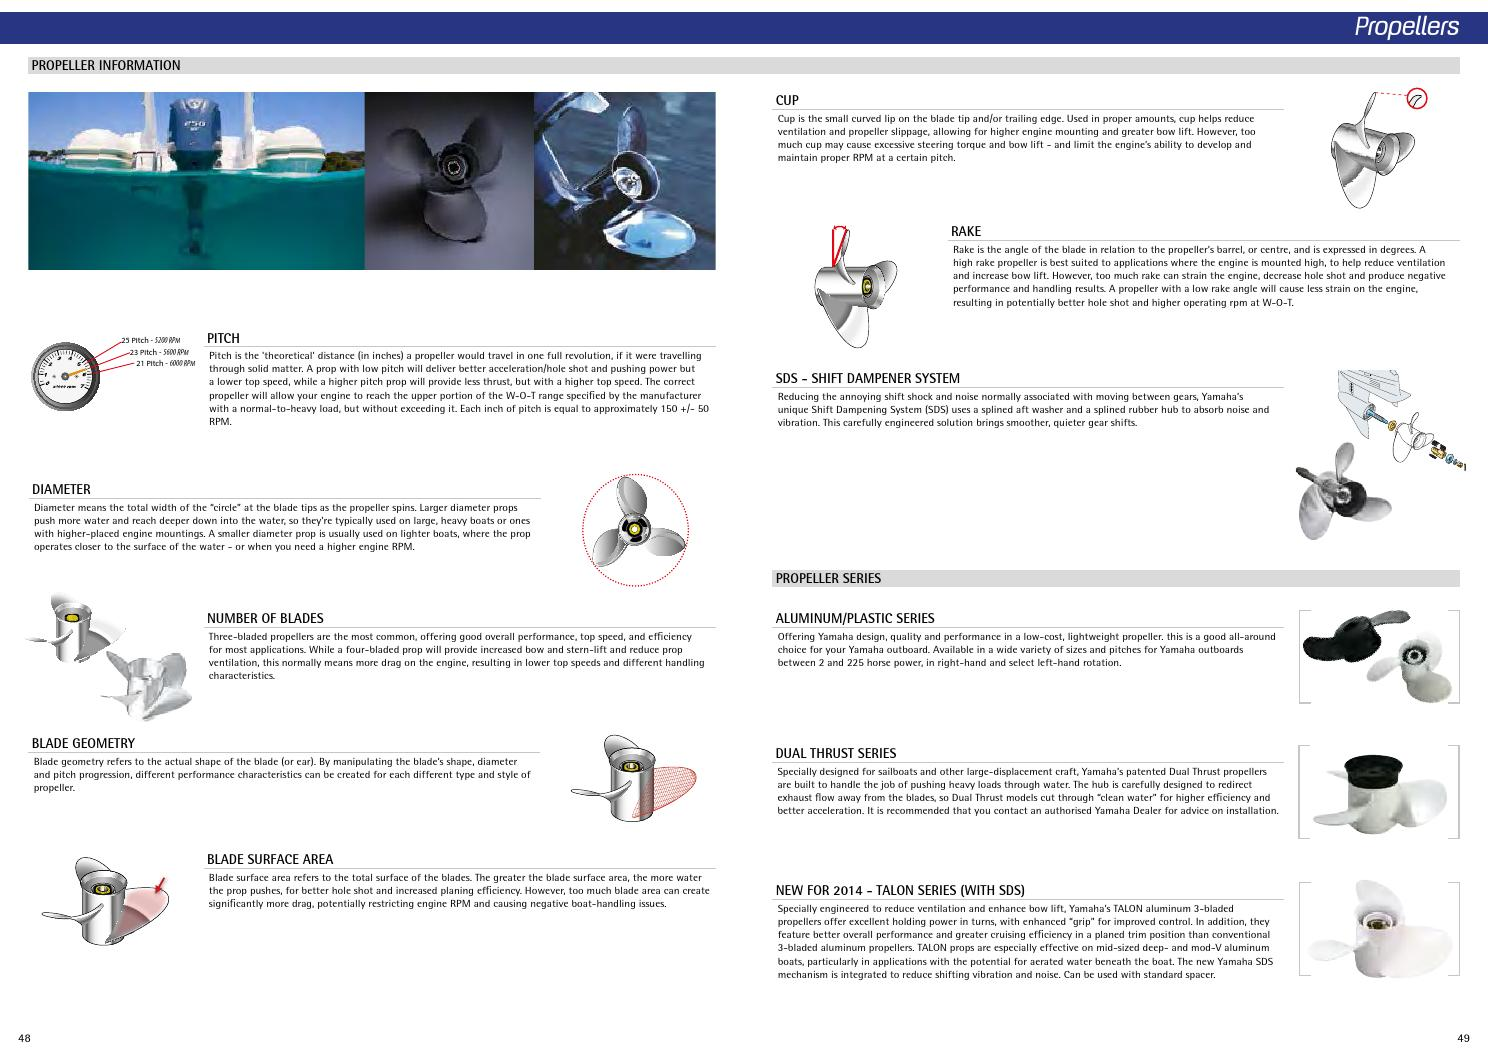 Yamaha marine accessories catalogue web by René Olsen - issuu